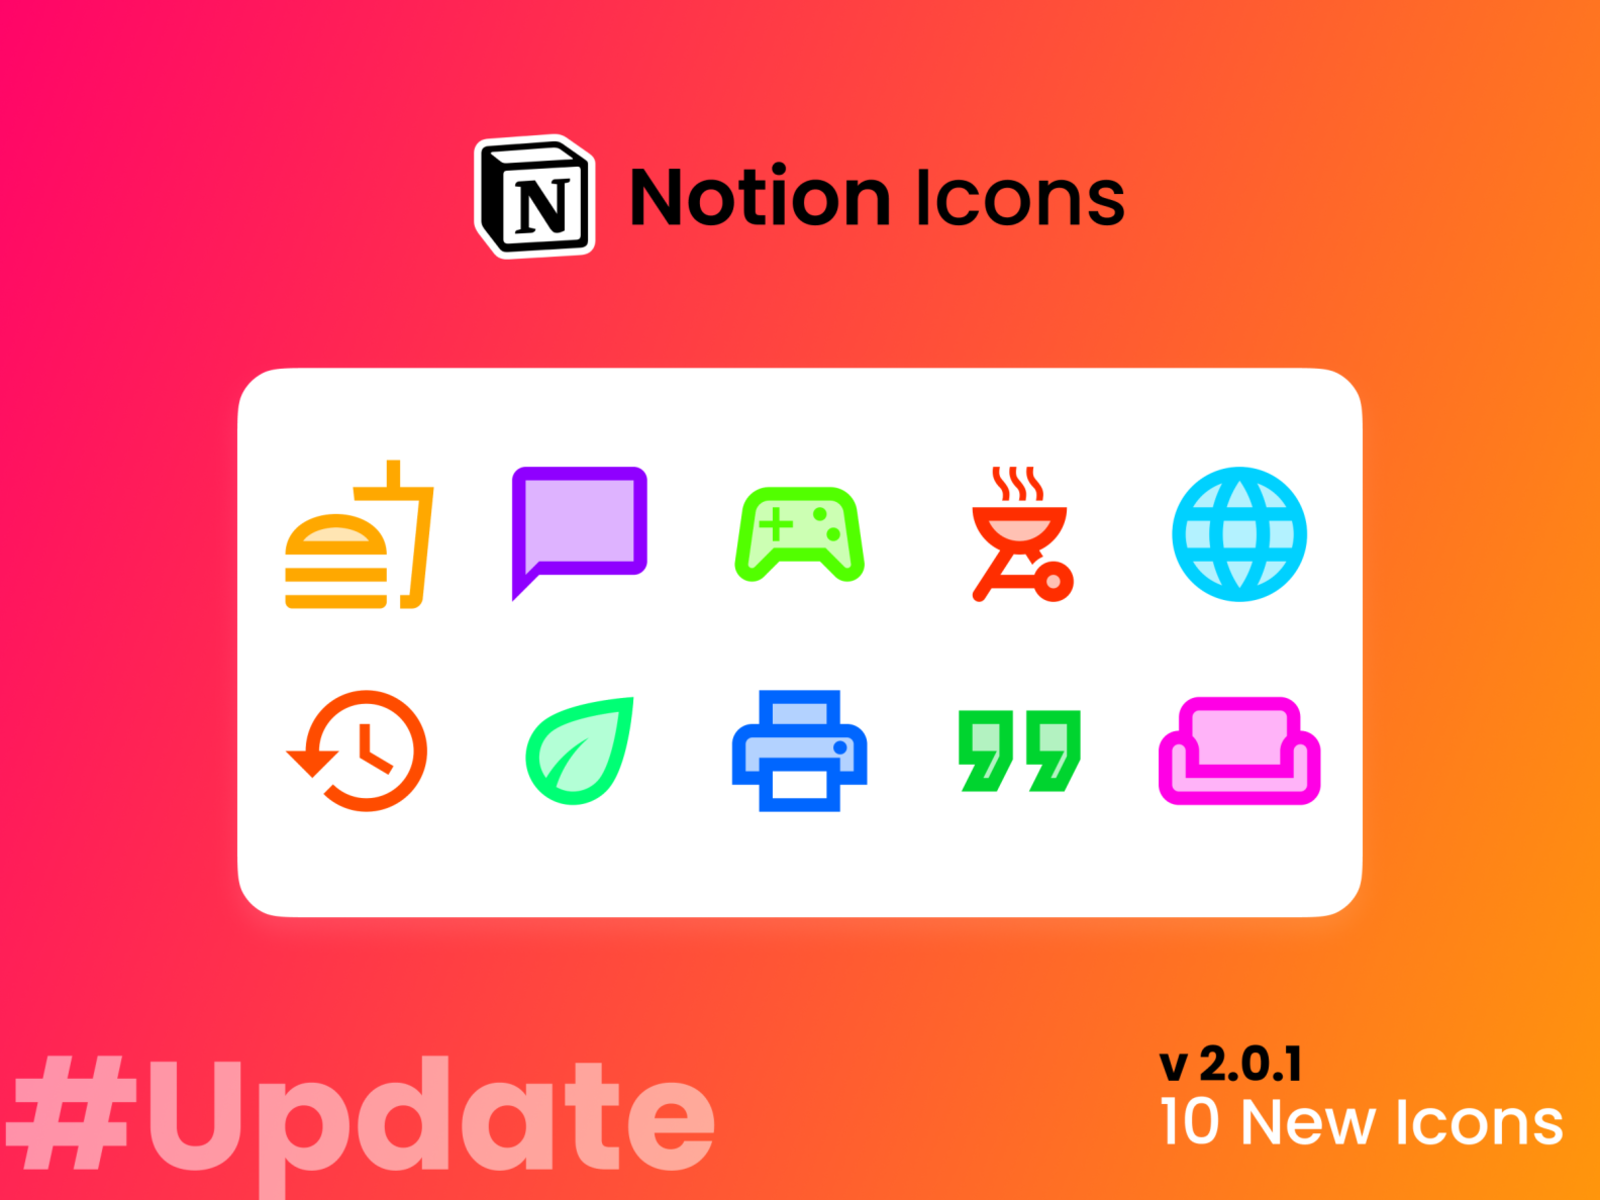 Notion Icons Update#1